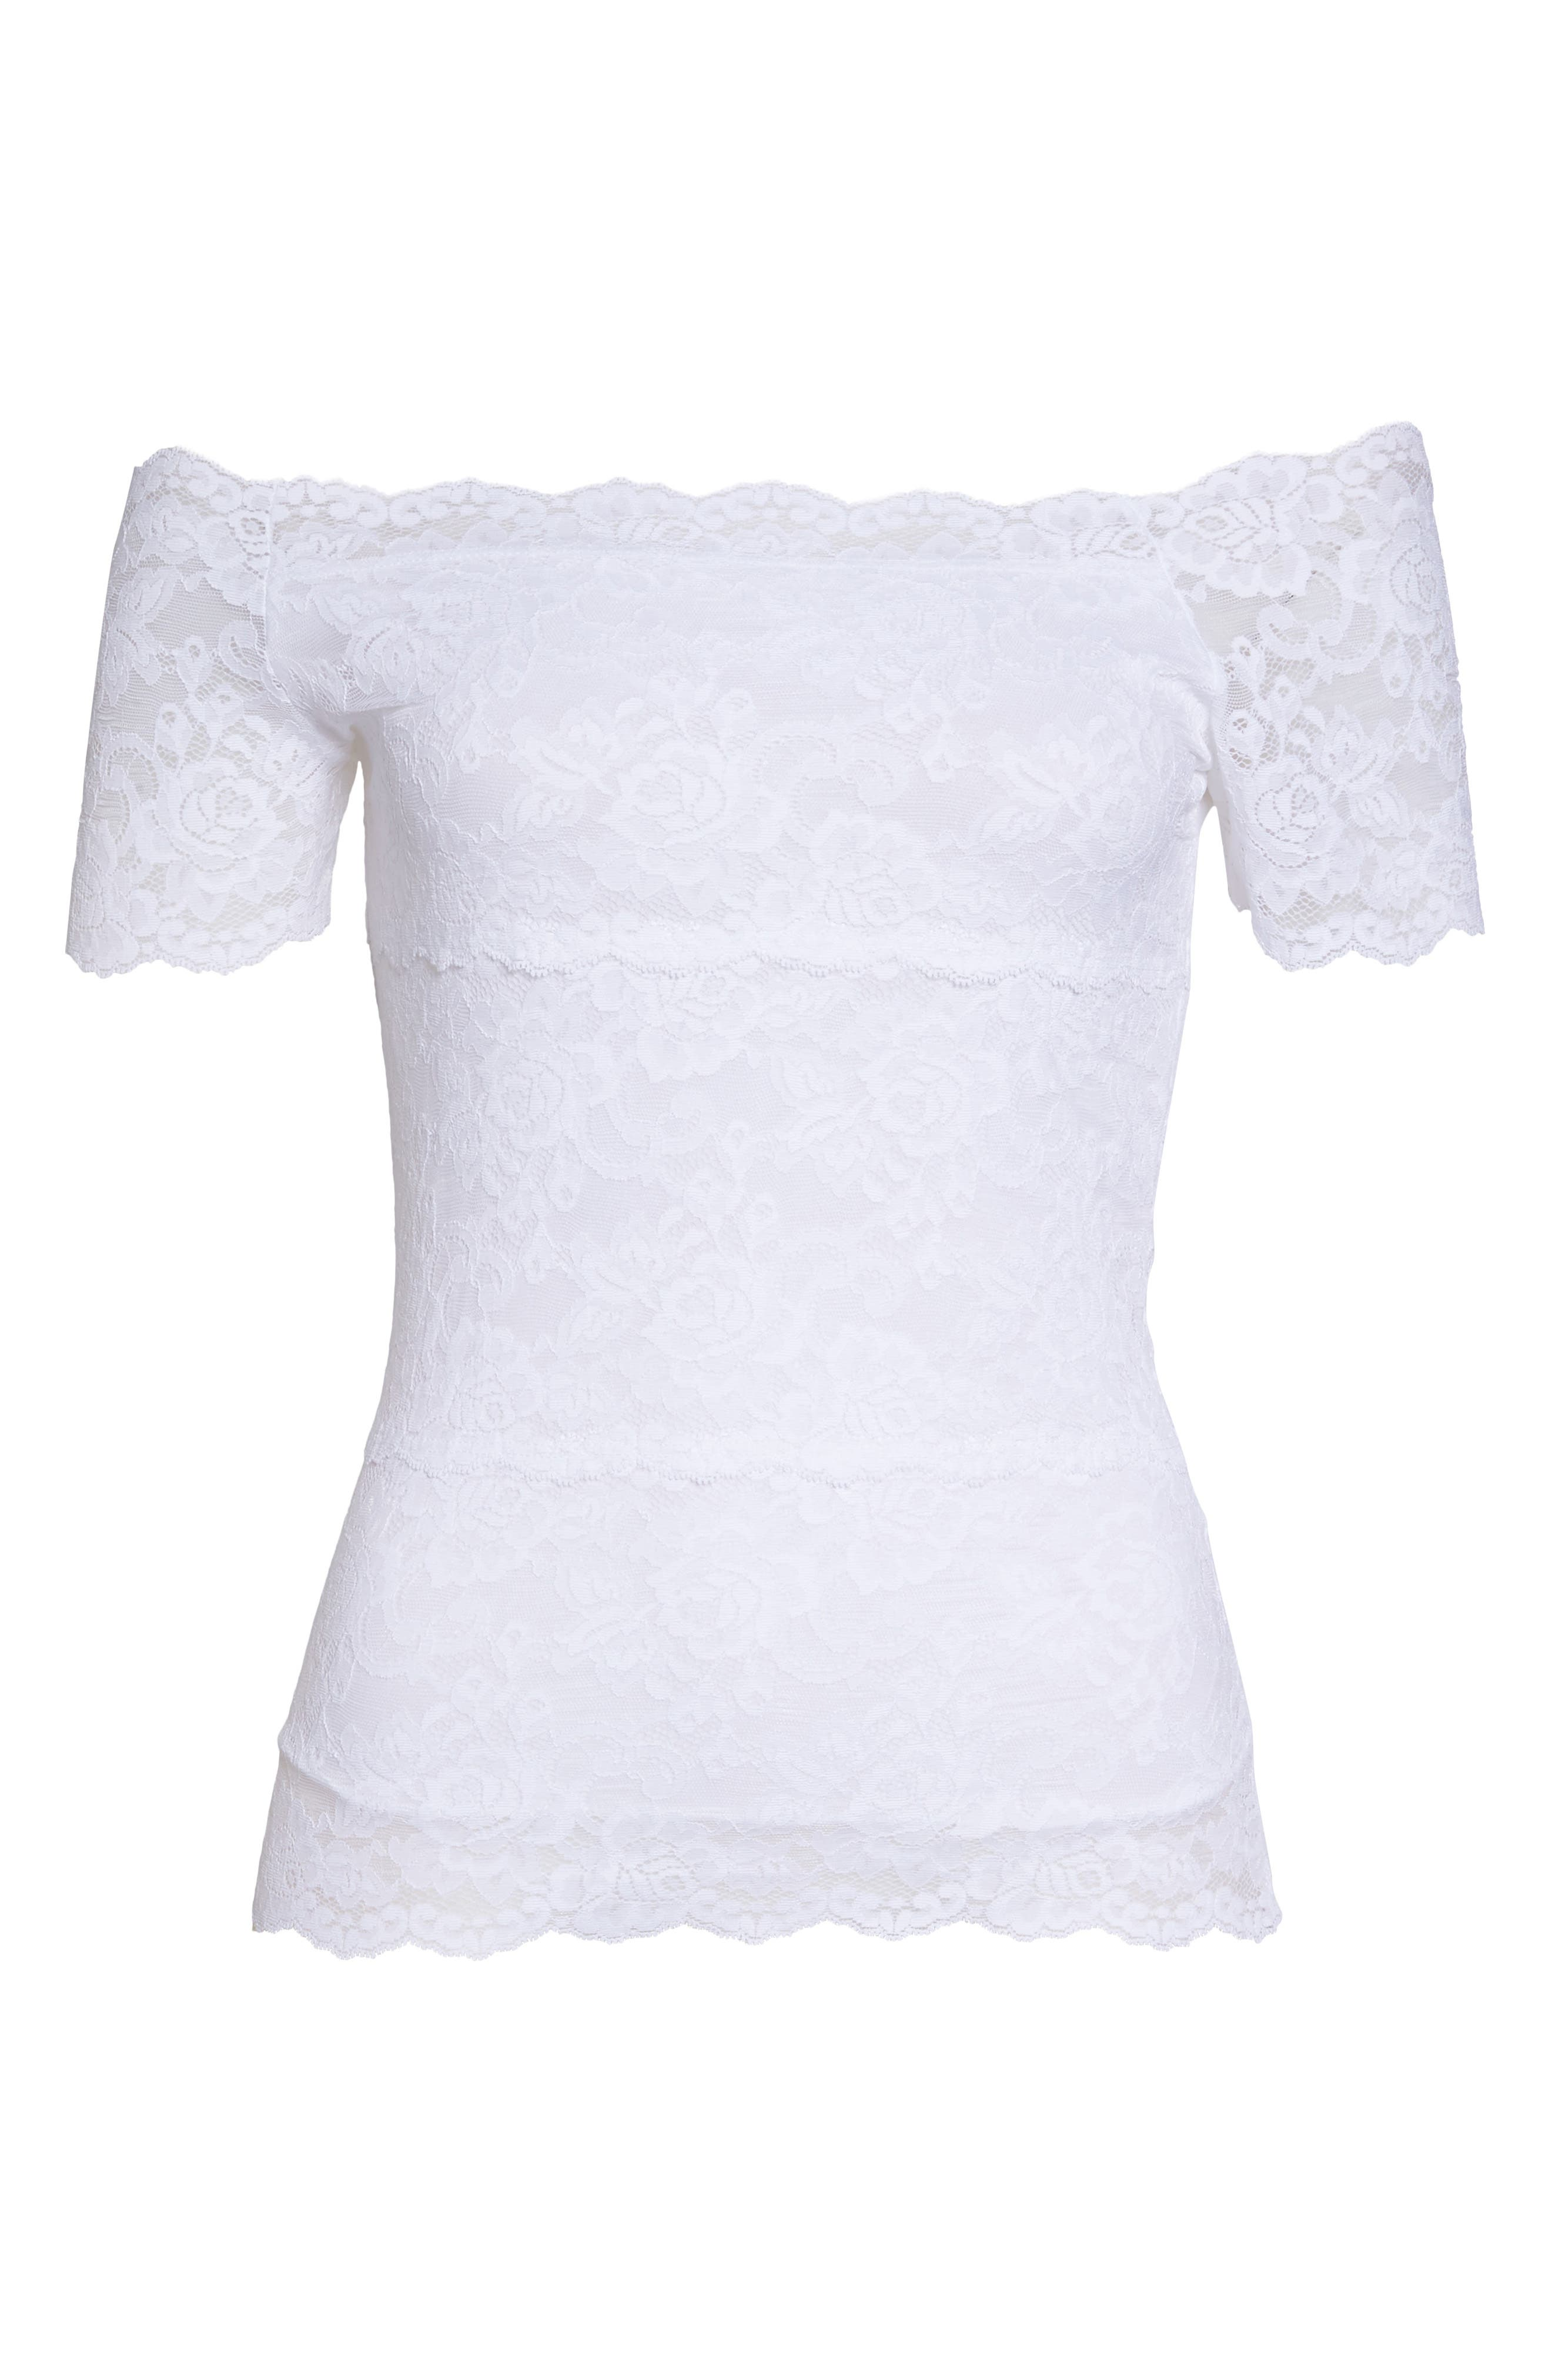 Evelyn Off the Shoulder Lace Top,                             Alternate thumbnail 4, color,                             White